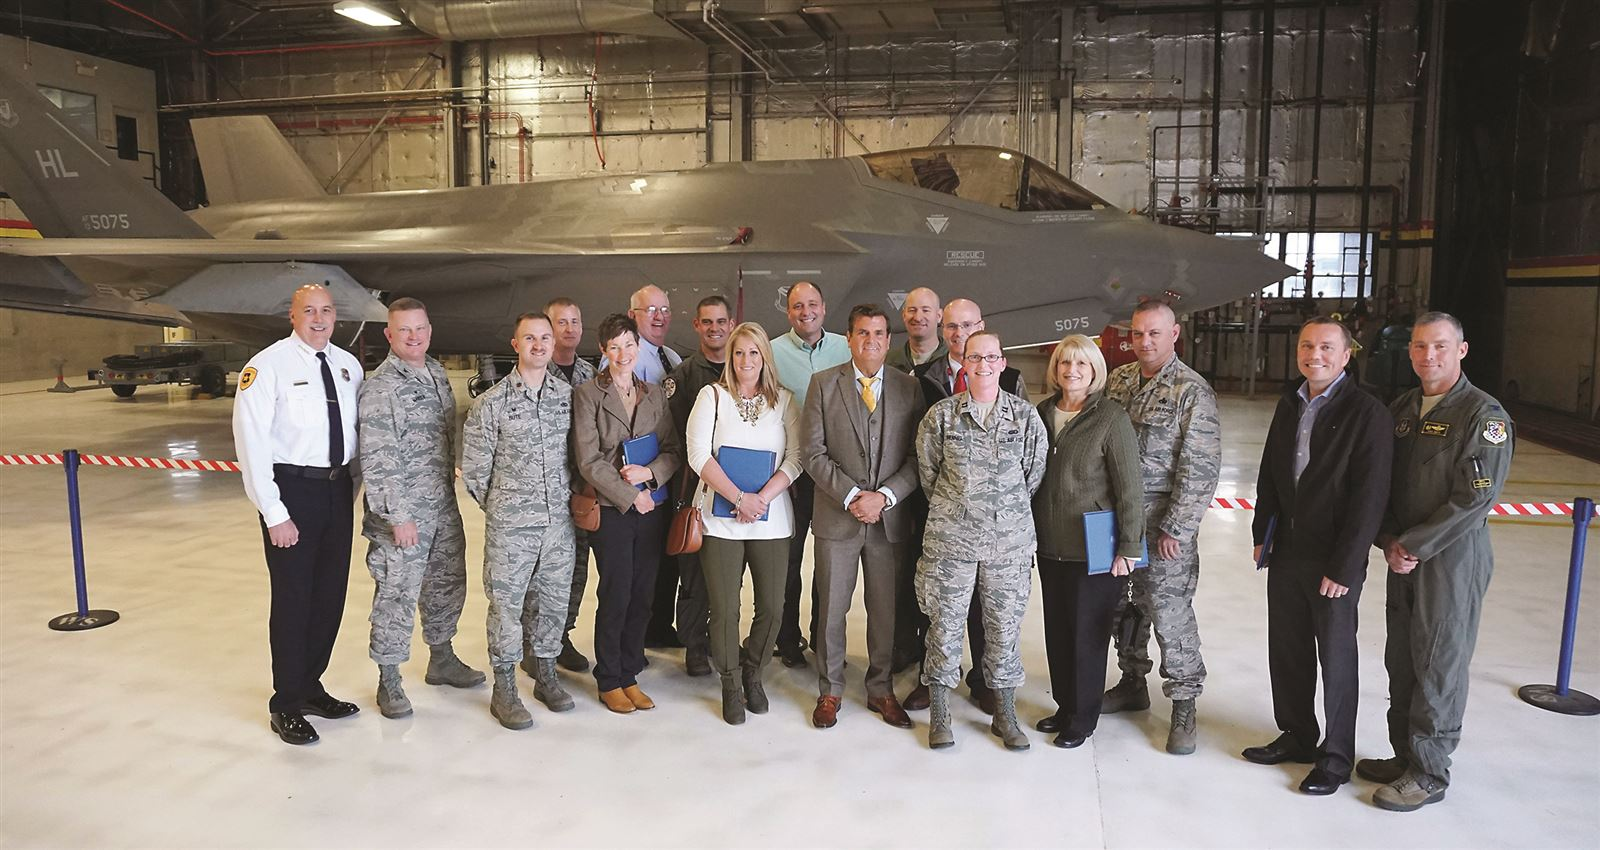 419th FW inducts honorary commanders